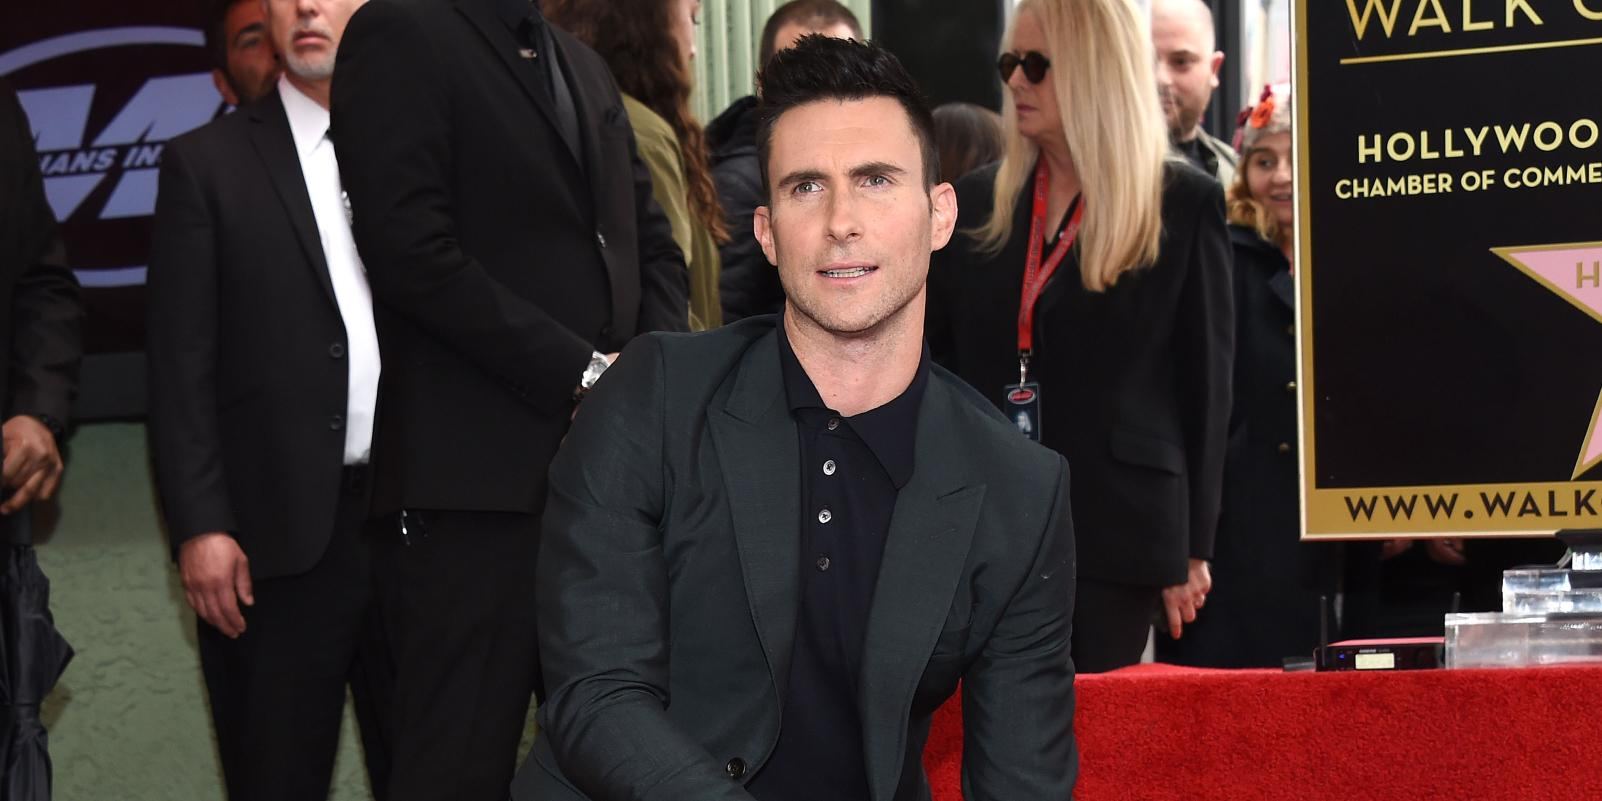 Celebrities at the Walk of Fame ceremony in honor of Adam Levine